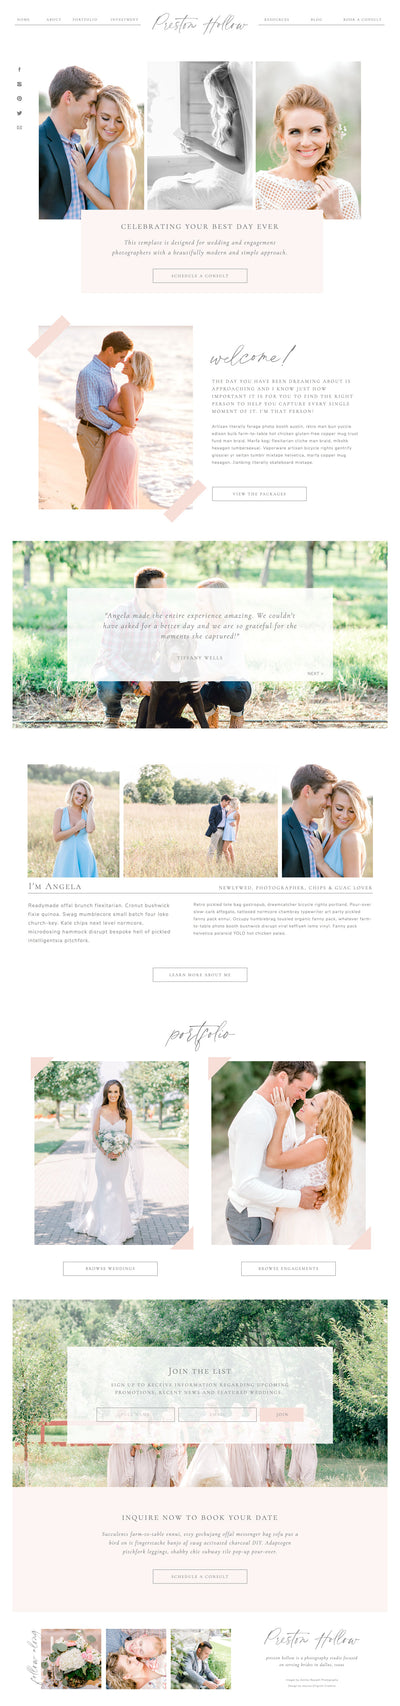 """Preston Hollow"" Showit Template - jessica gingrich"